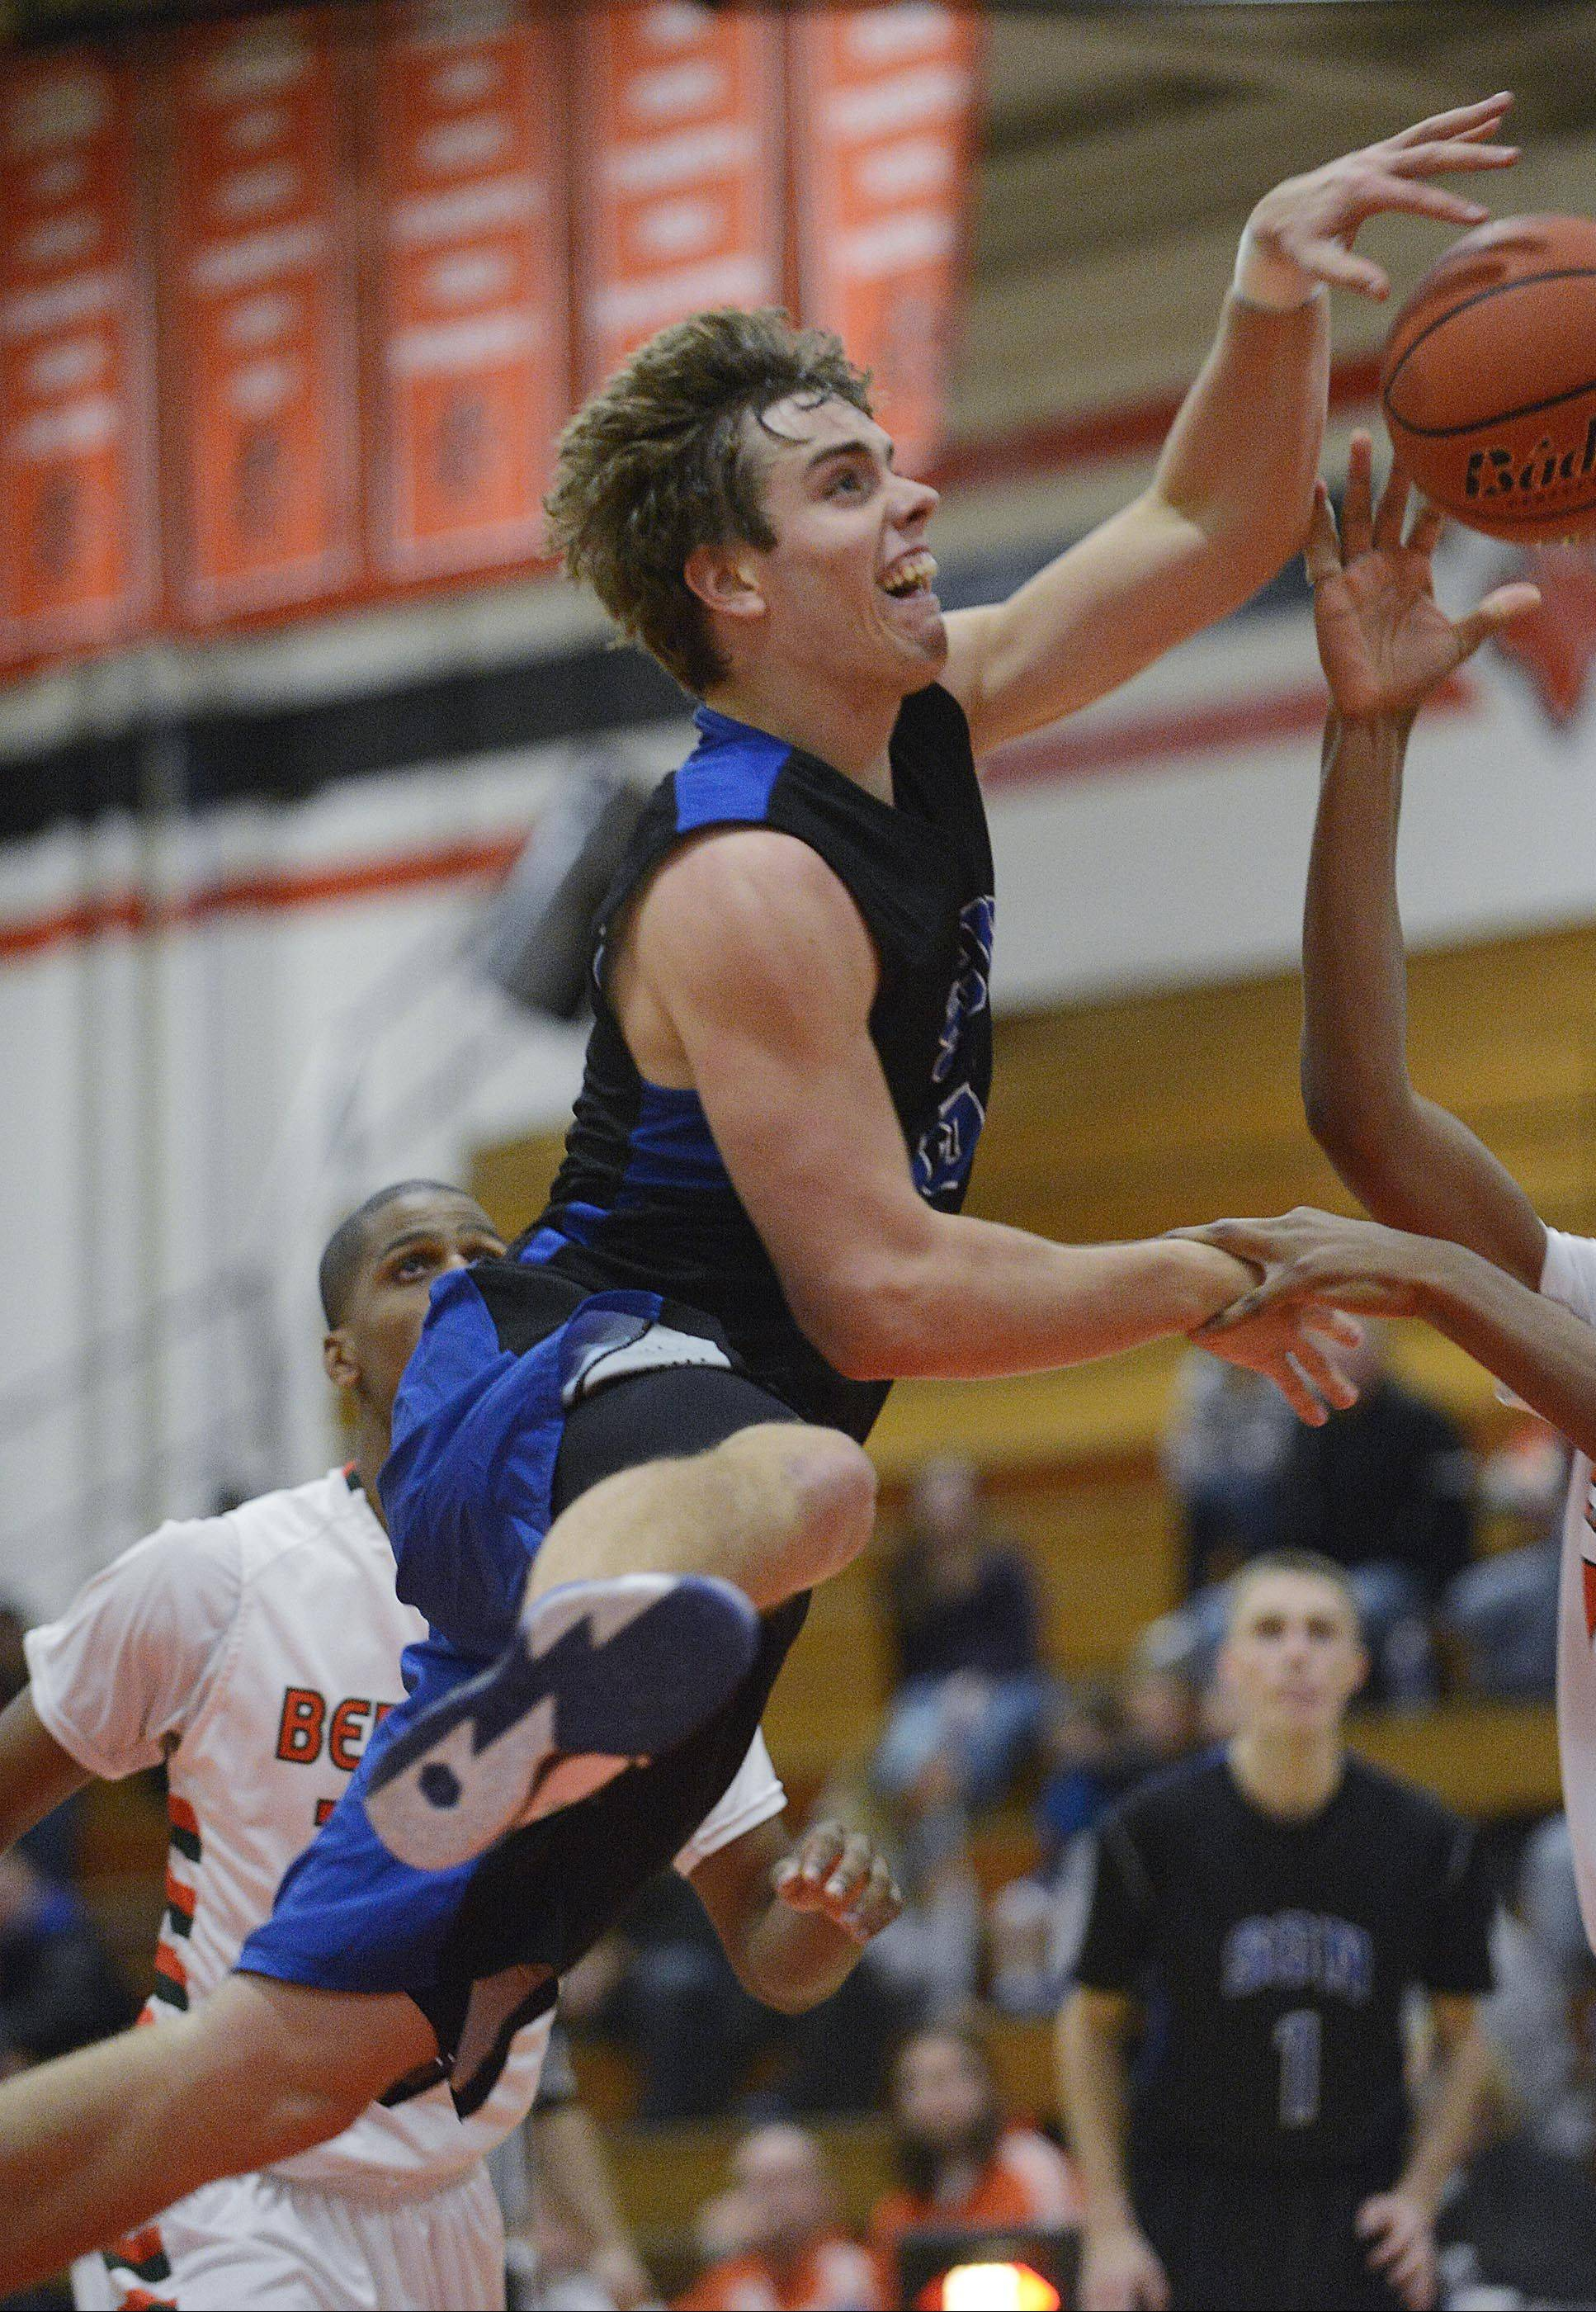 St. Charles North�s Erik Miller, pictured in the season-opener against Plainfield East, said practices have been more intense since giving up 90 points to St. Charles East in their last game.